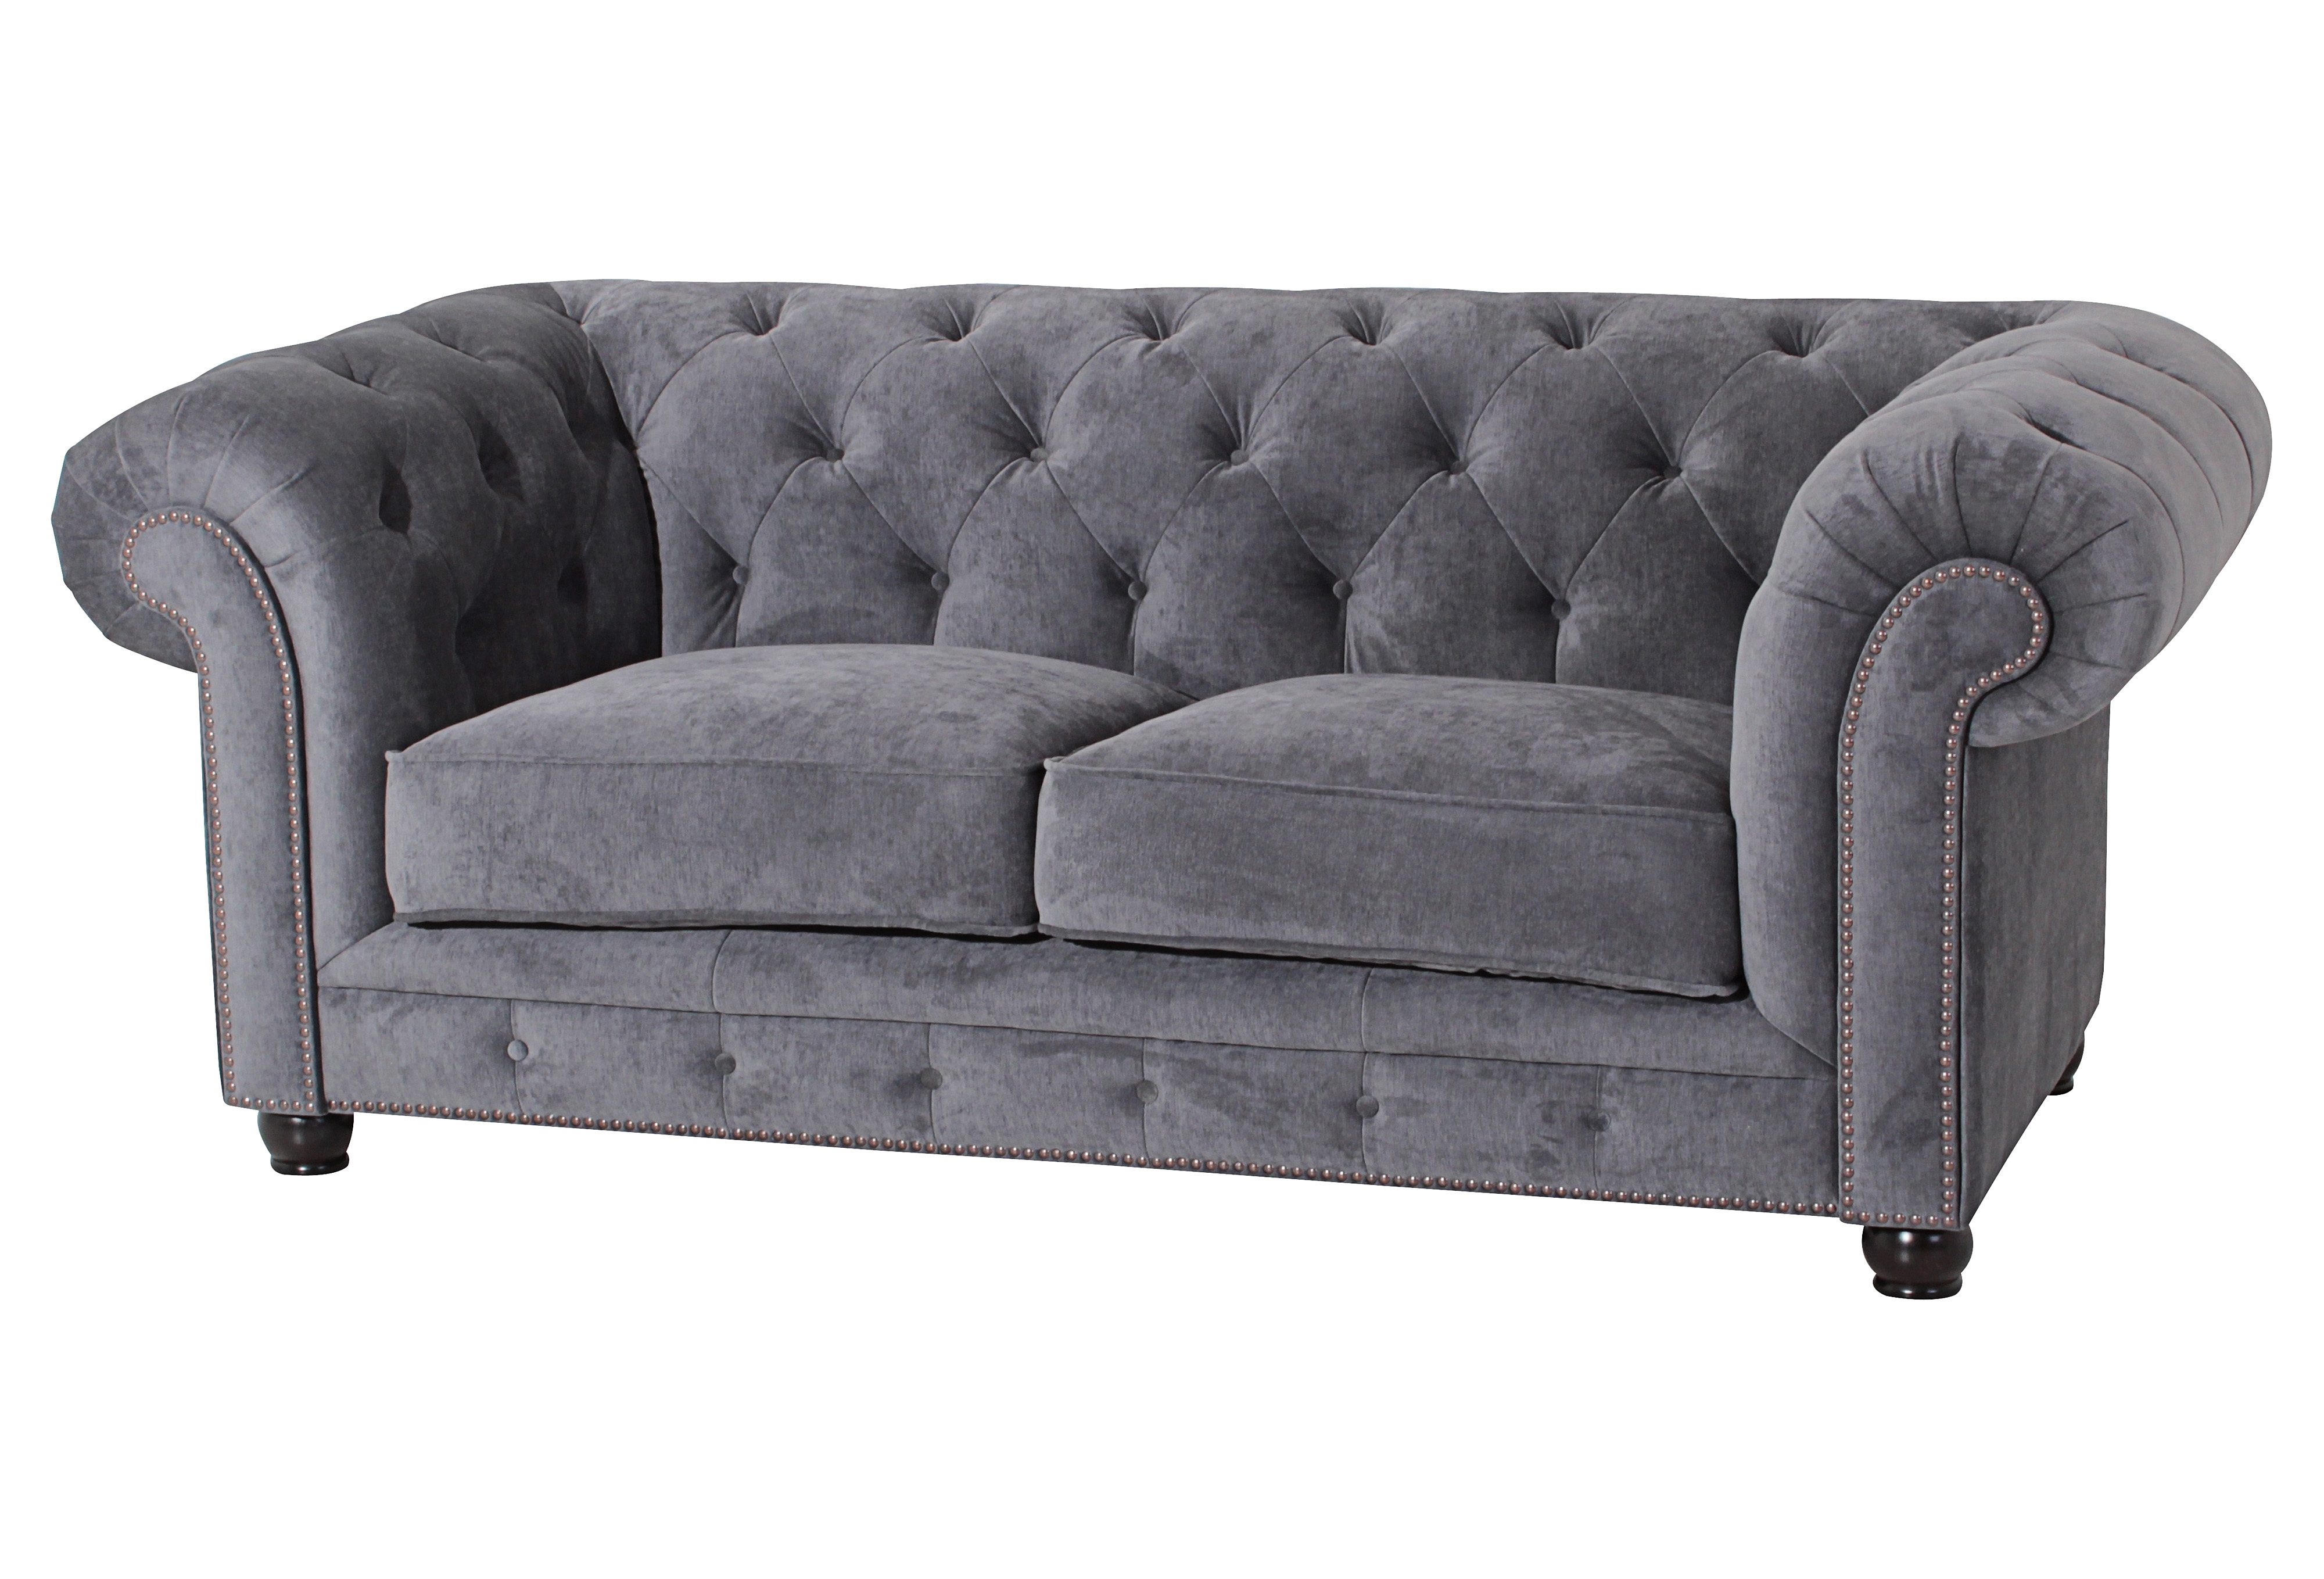 Sofa Set Grau Max Winzer® Chesterfield Sofa »old England«, Mit Edler